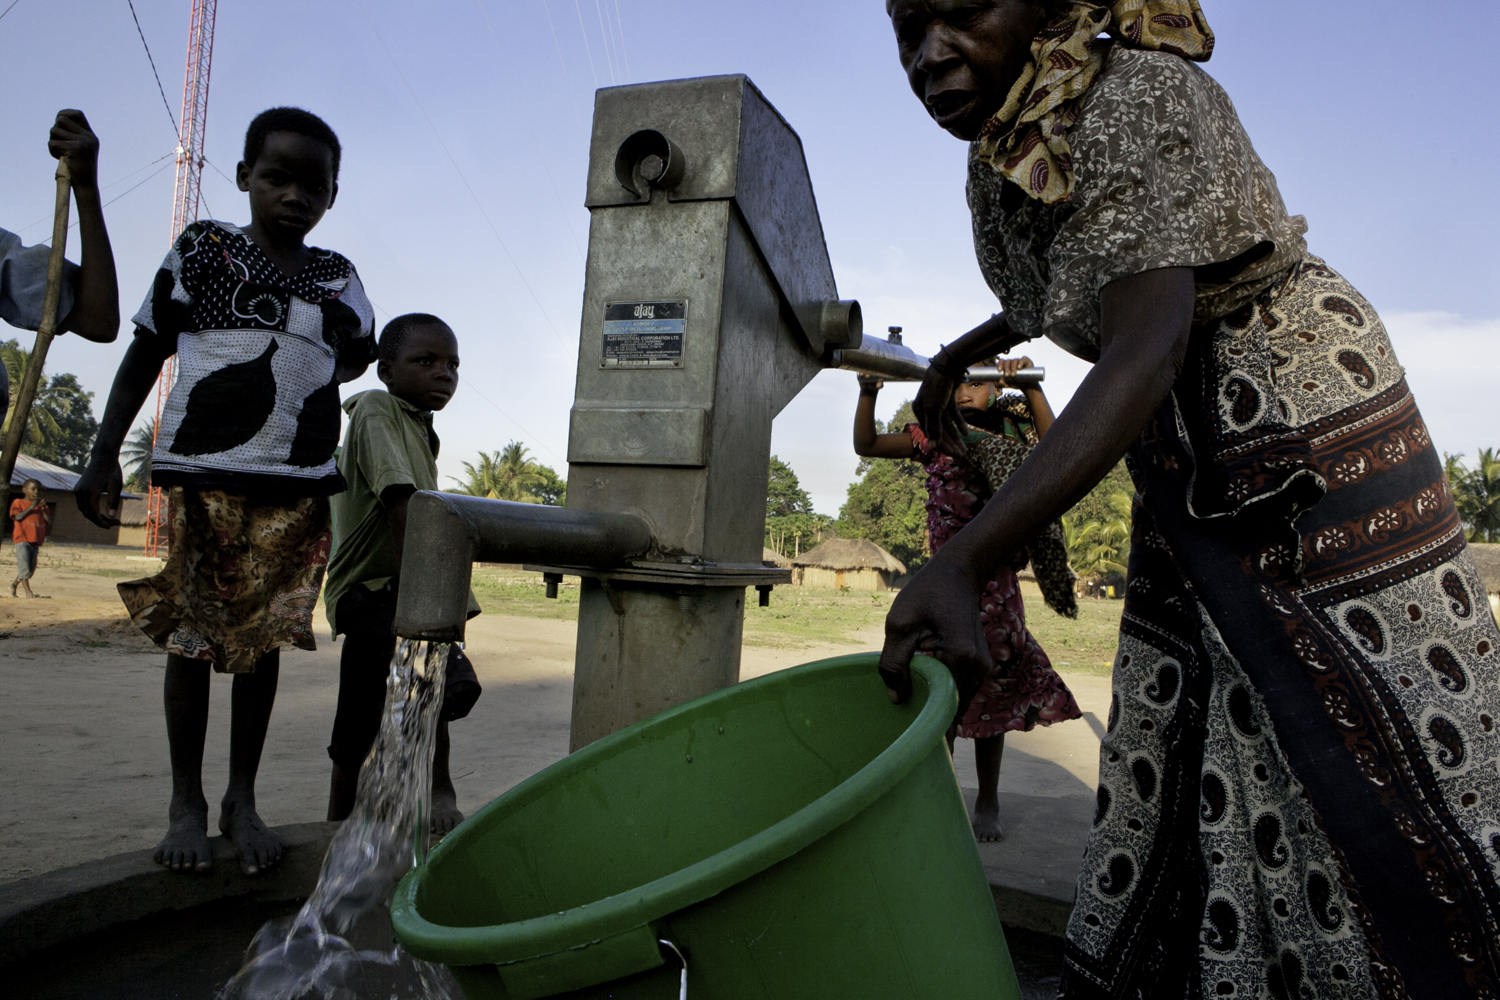 After well rehab is successful, people of all ages utilize the pump to gather water.